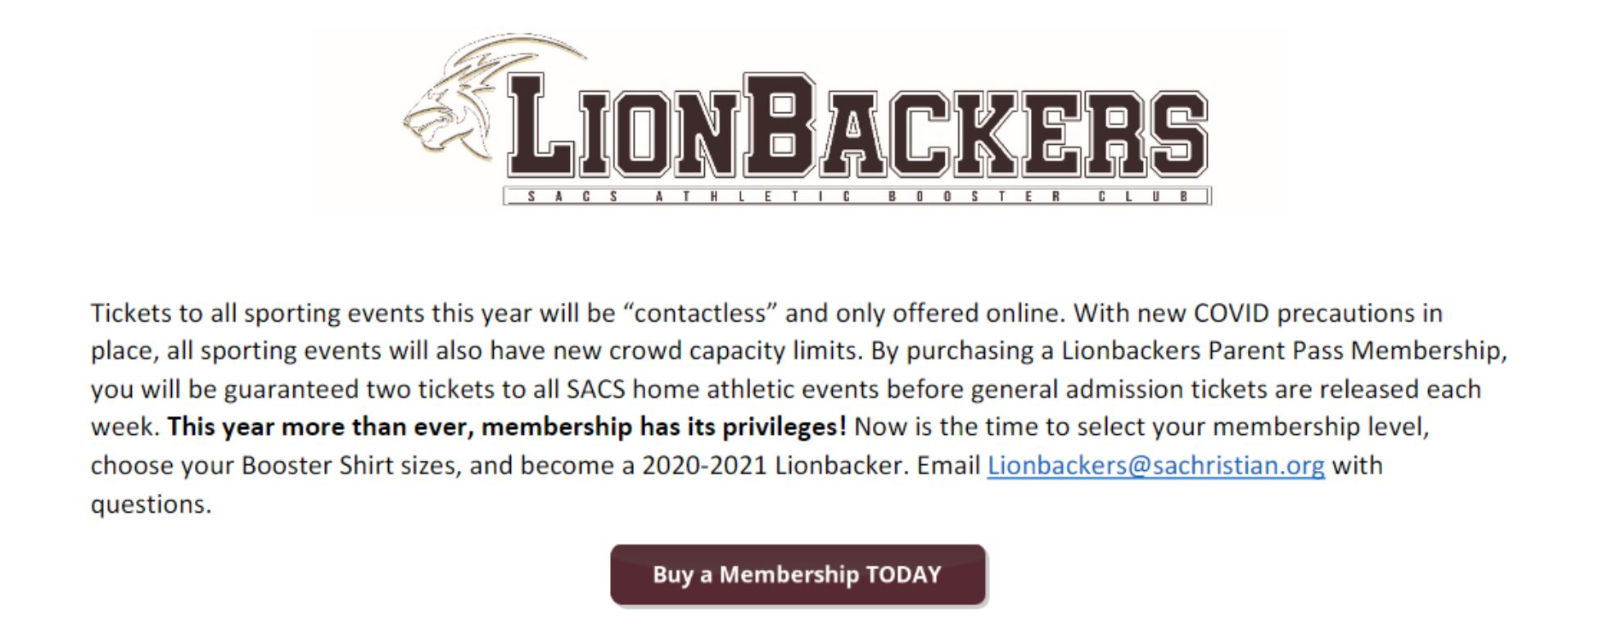 Become a LionBacker Today and Have Early Access to Sporting Events!